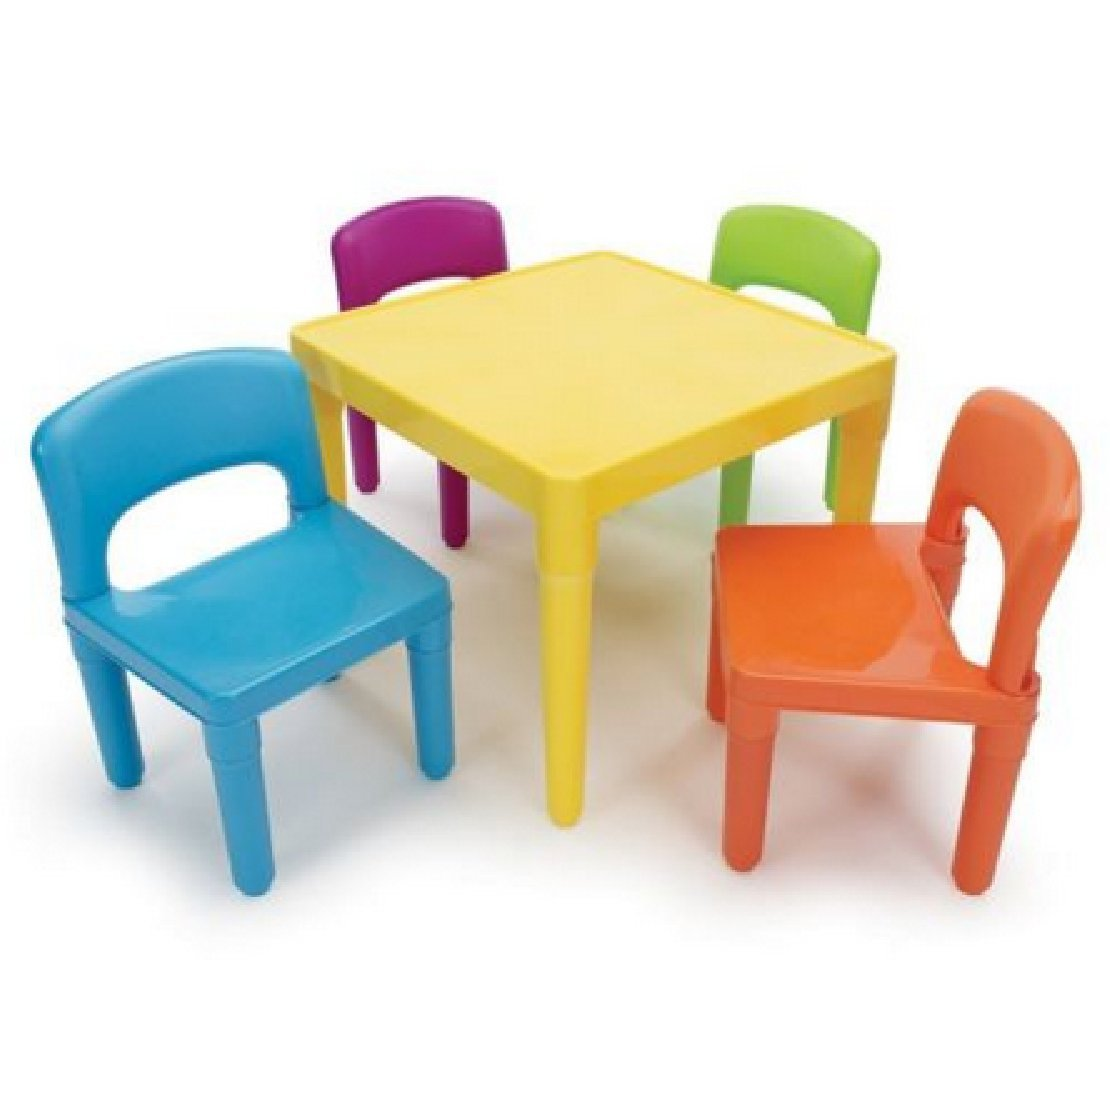 Phumon567 Activity Table Kids Play Indoor Outdoor : and Chairs Set Toddler Child Toy Furniture in-Outdoor Amazon.com: